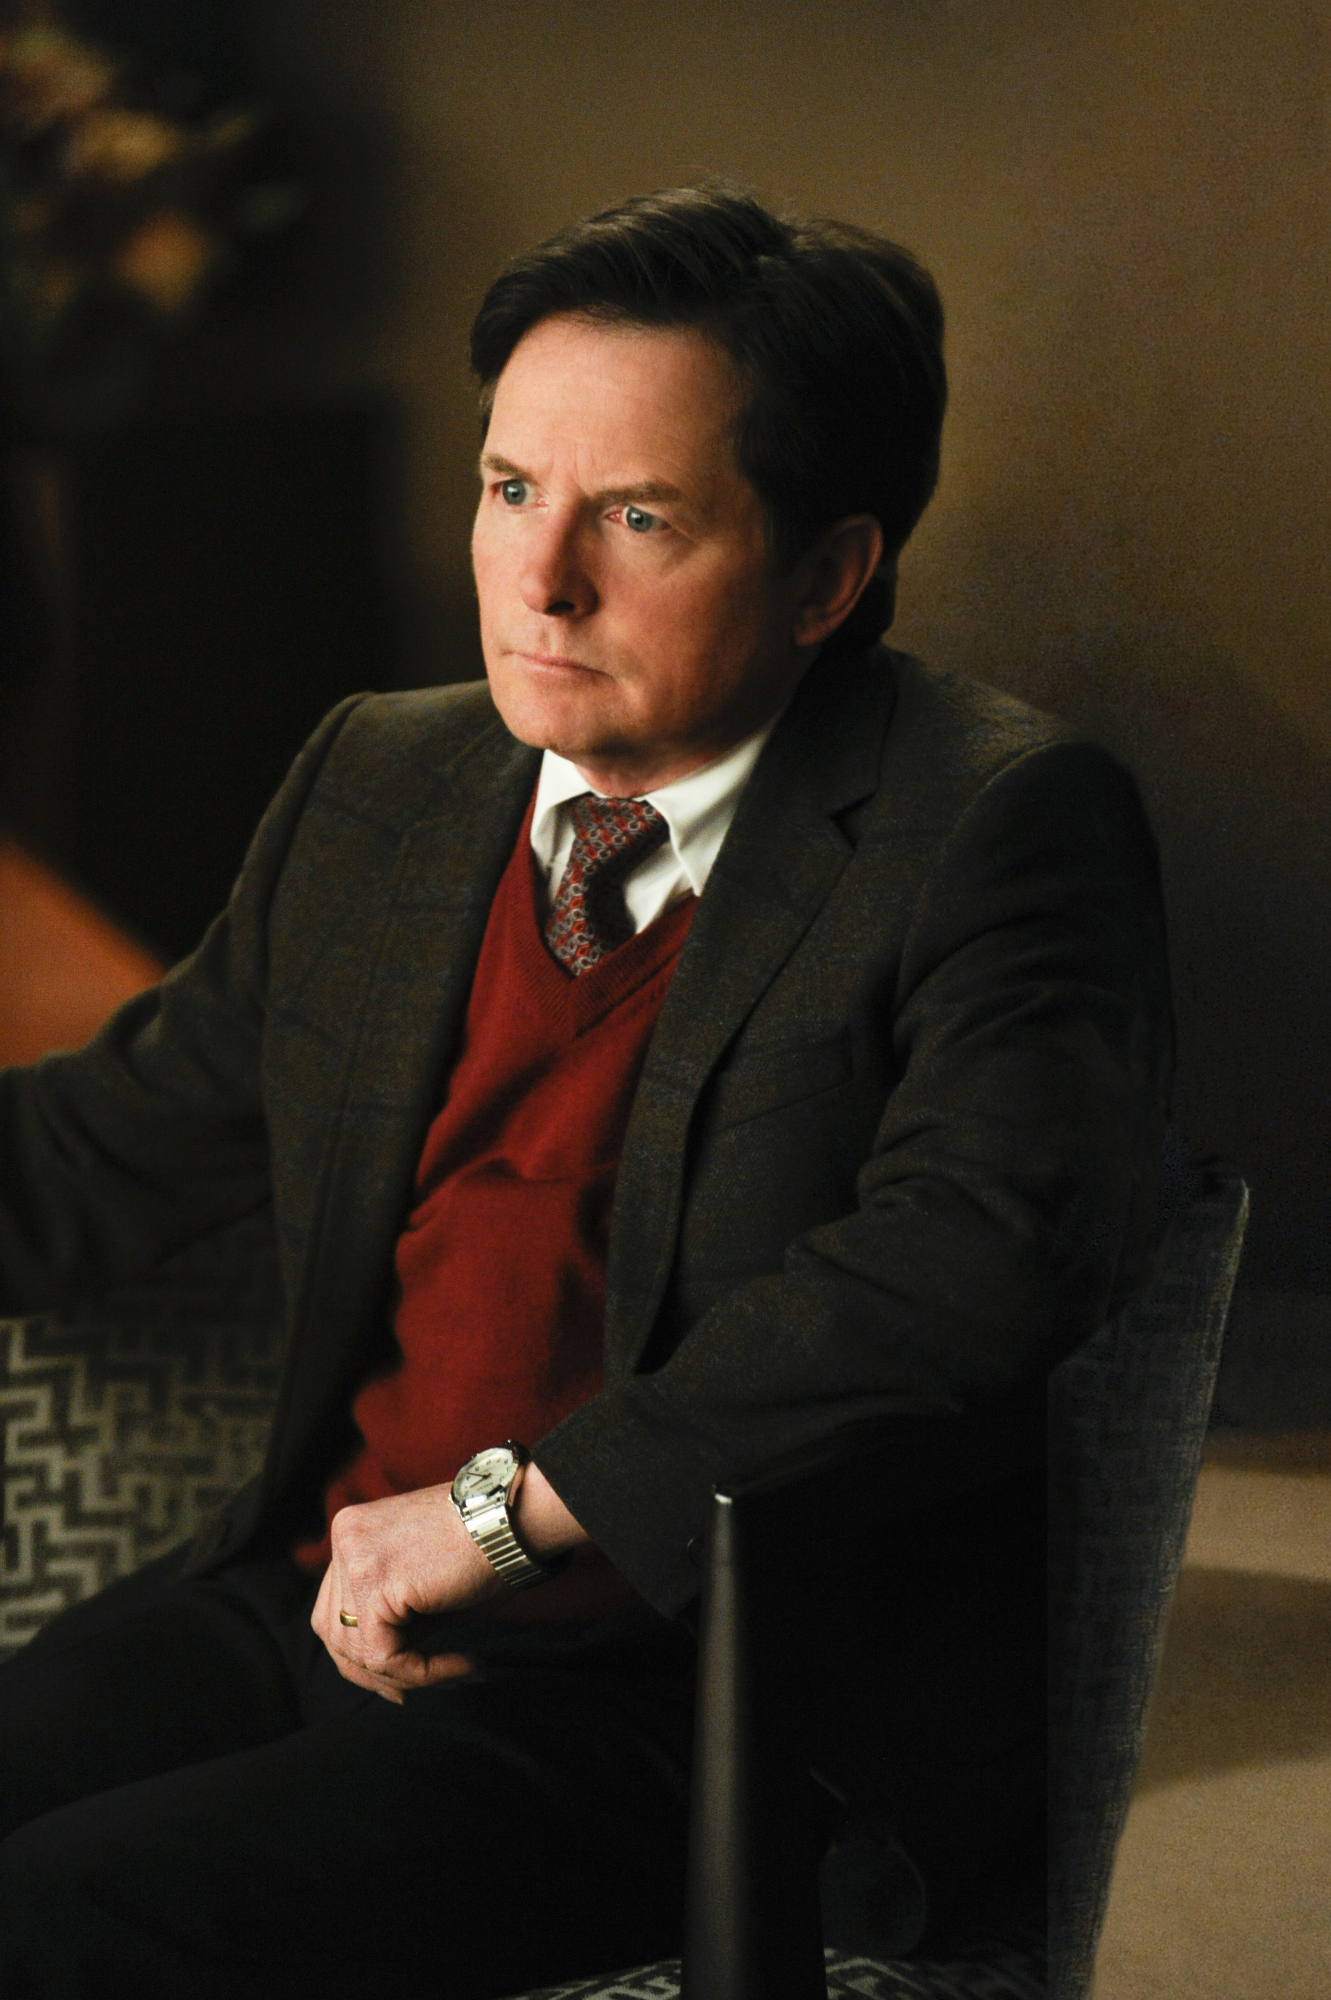 Michael J. Fox as Louis Canning in